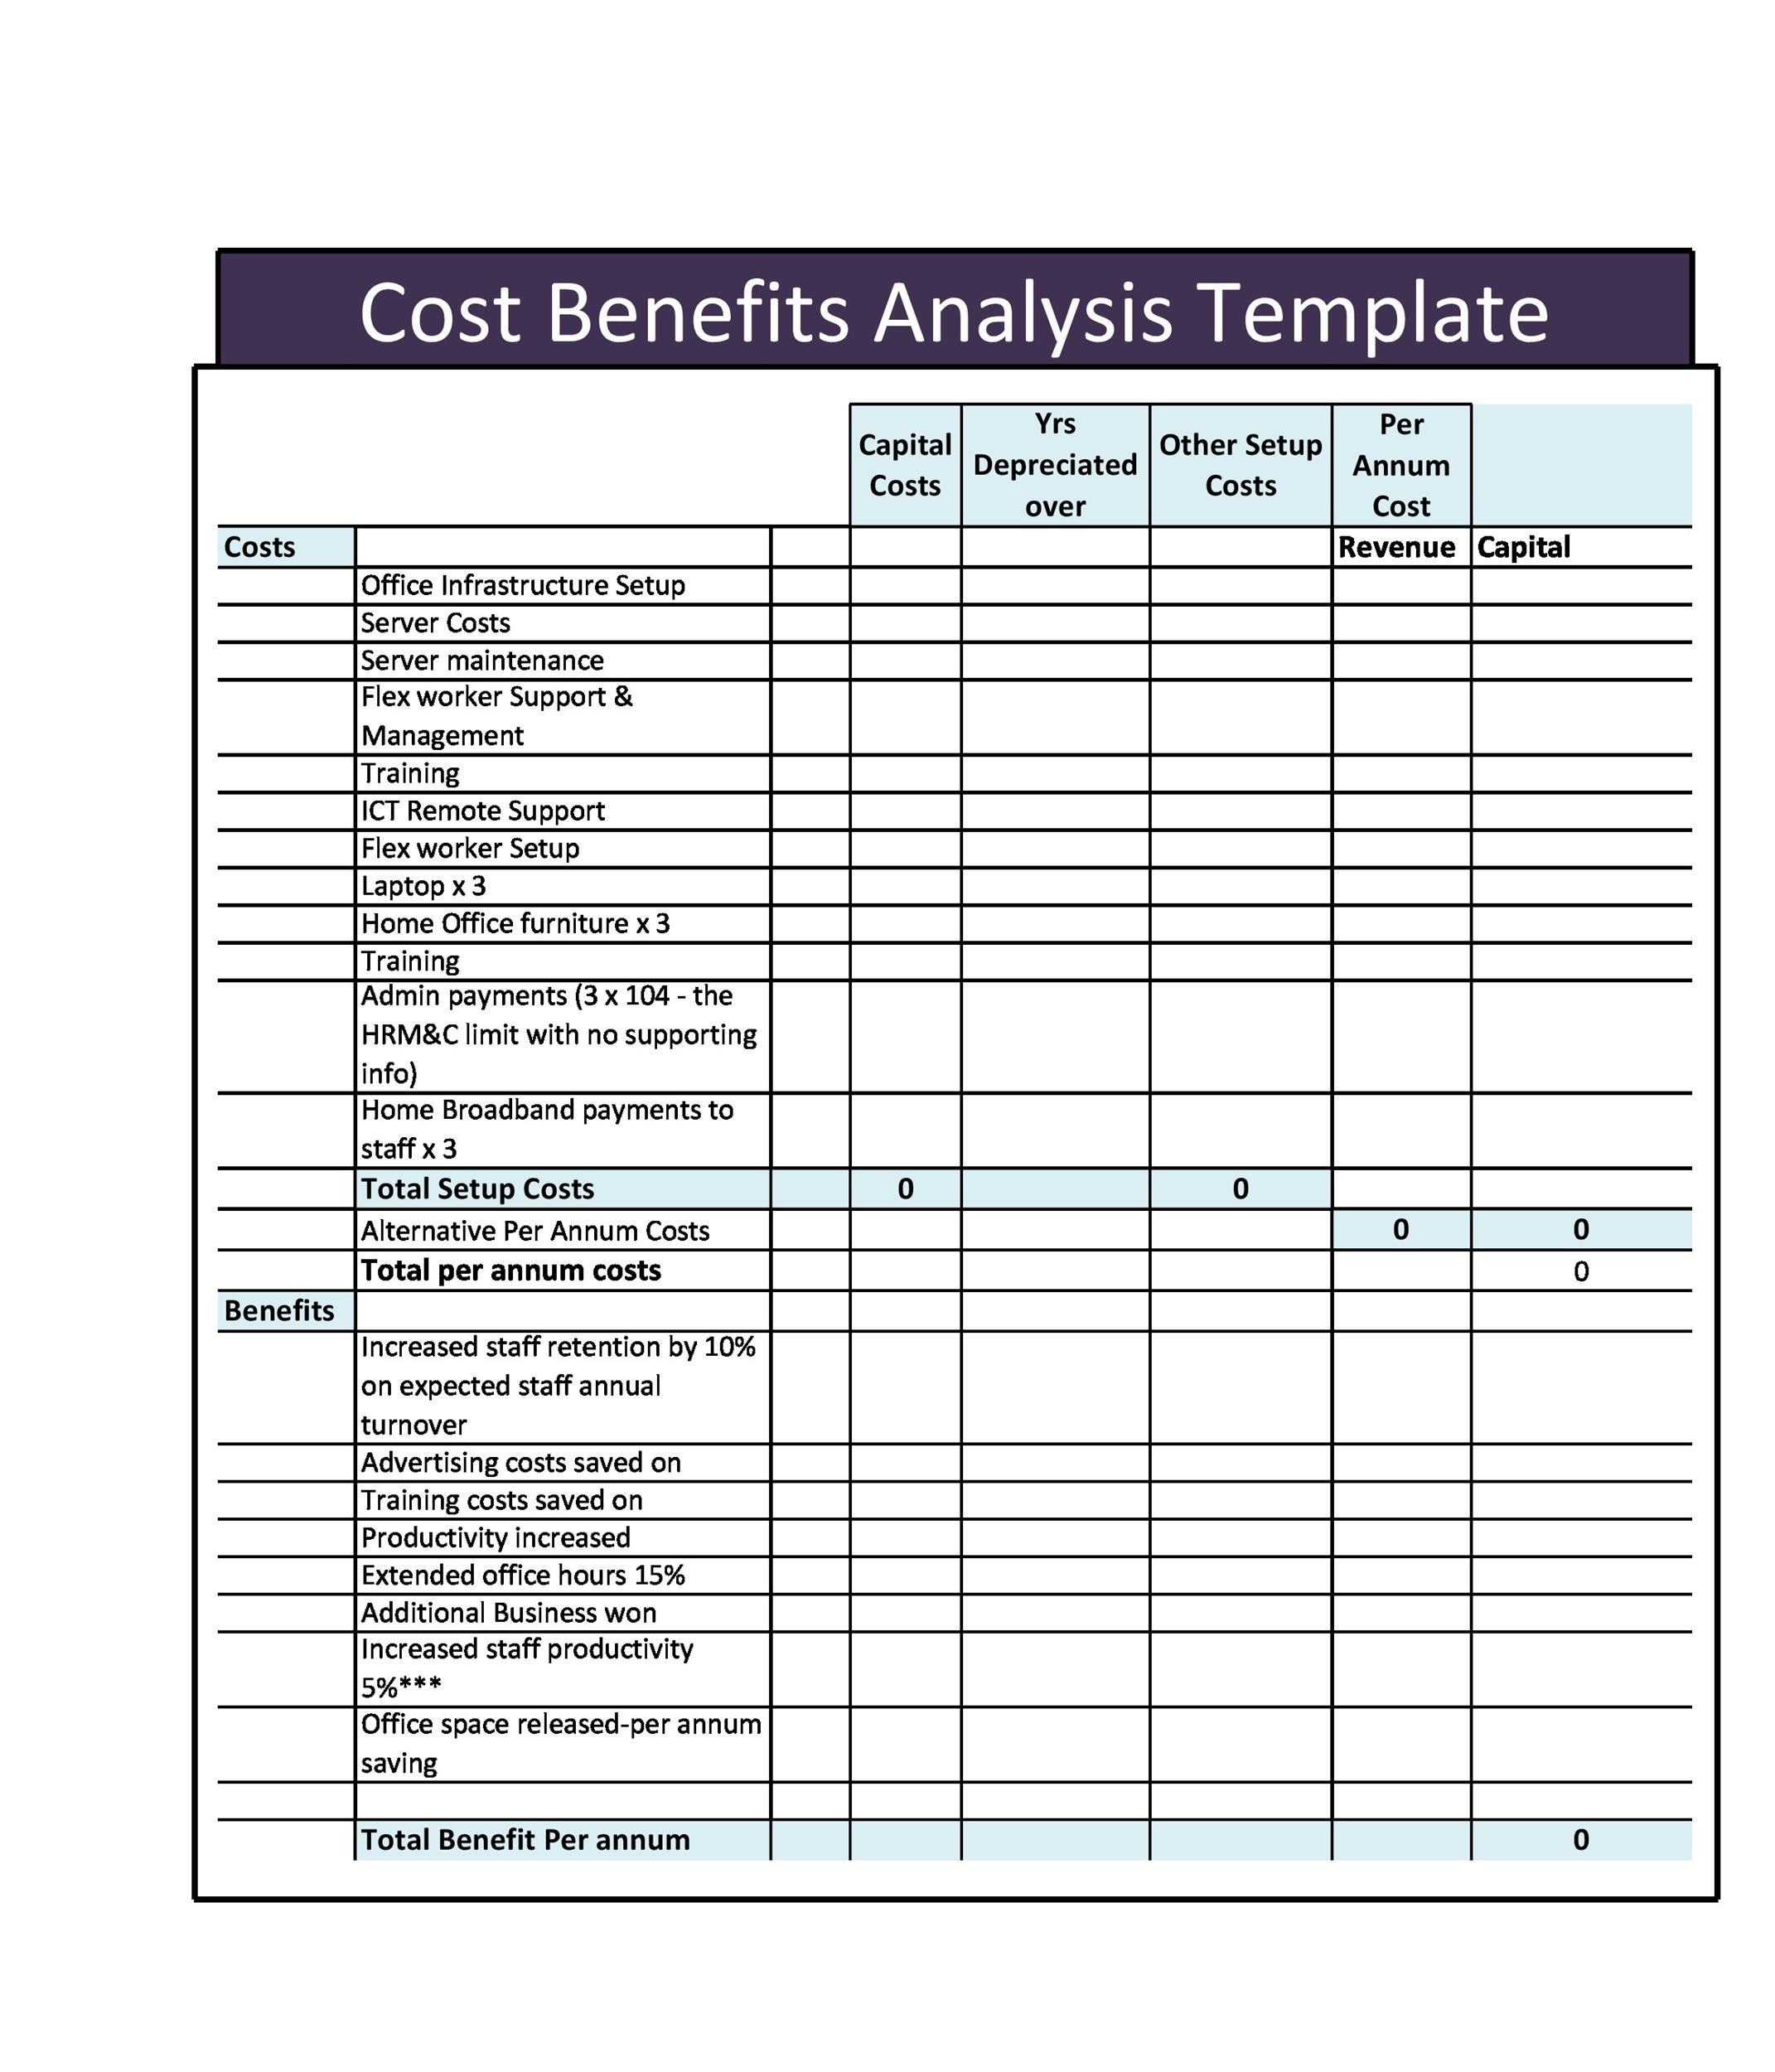 Analysis Templates. Root Cause Analysis Template 01 40+ Effective